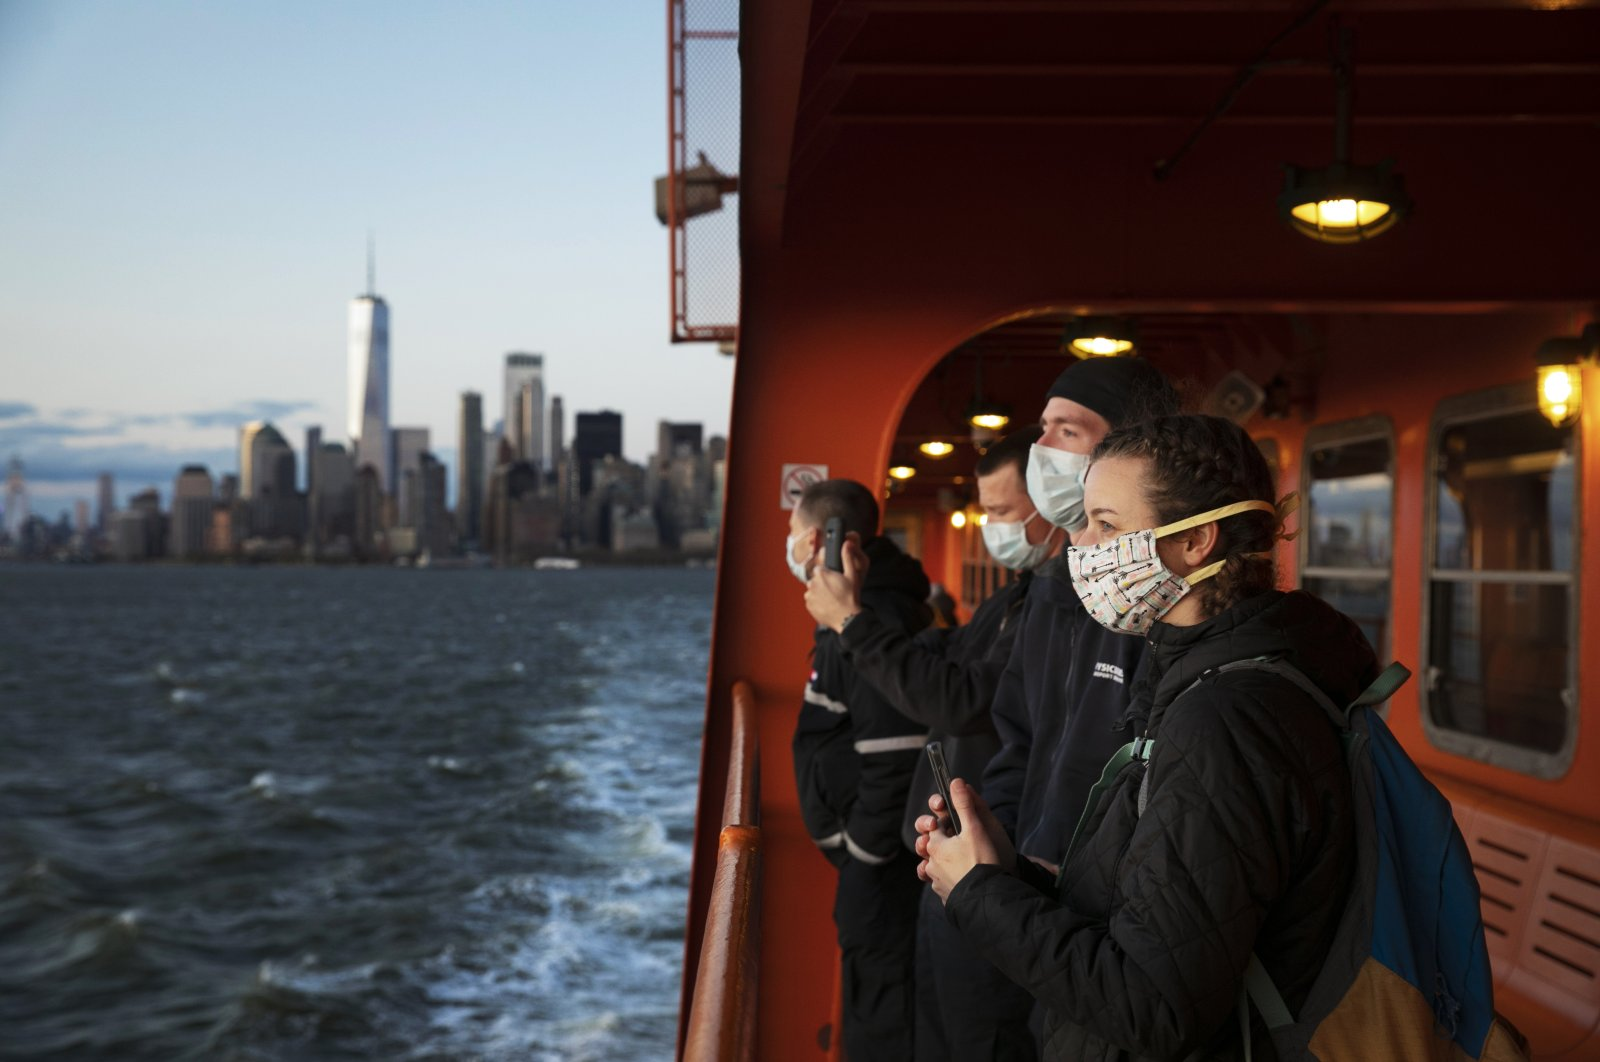 A group of emergency medical technicians who have come to New York to assist ambulance crews during the coronavirus pandemic ride the Staten Island Ferry, in New York, April 21, 2020. (AP Photo)